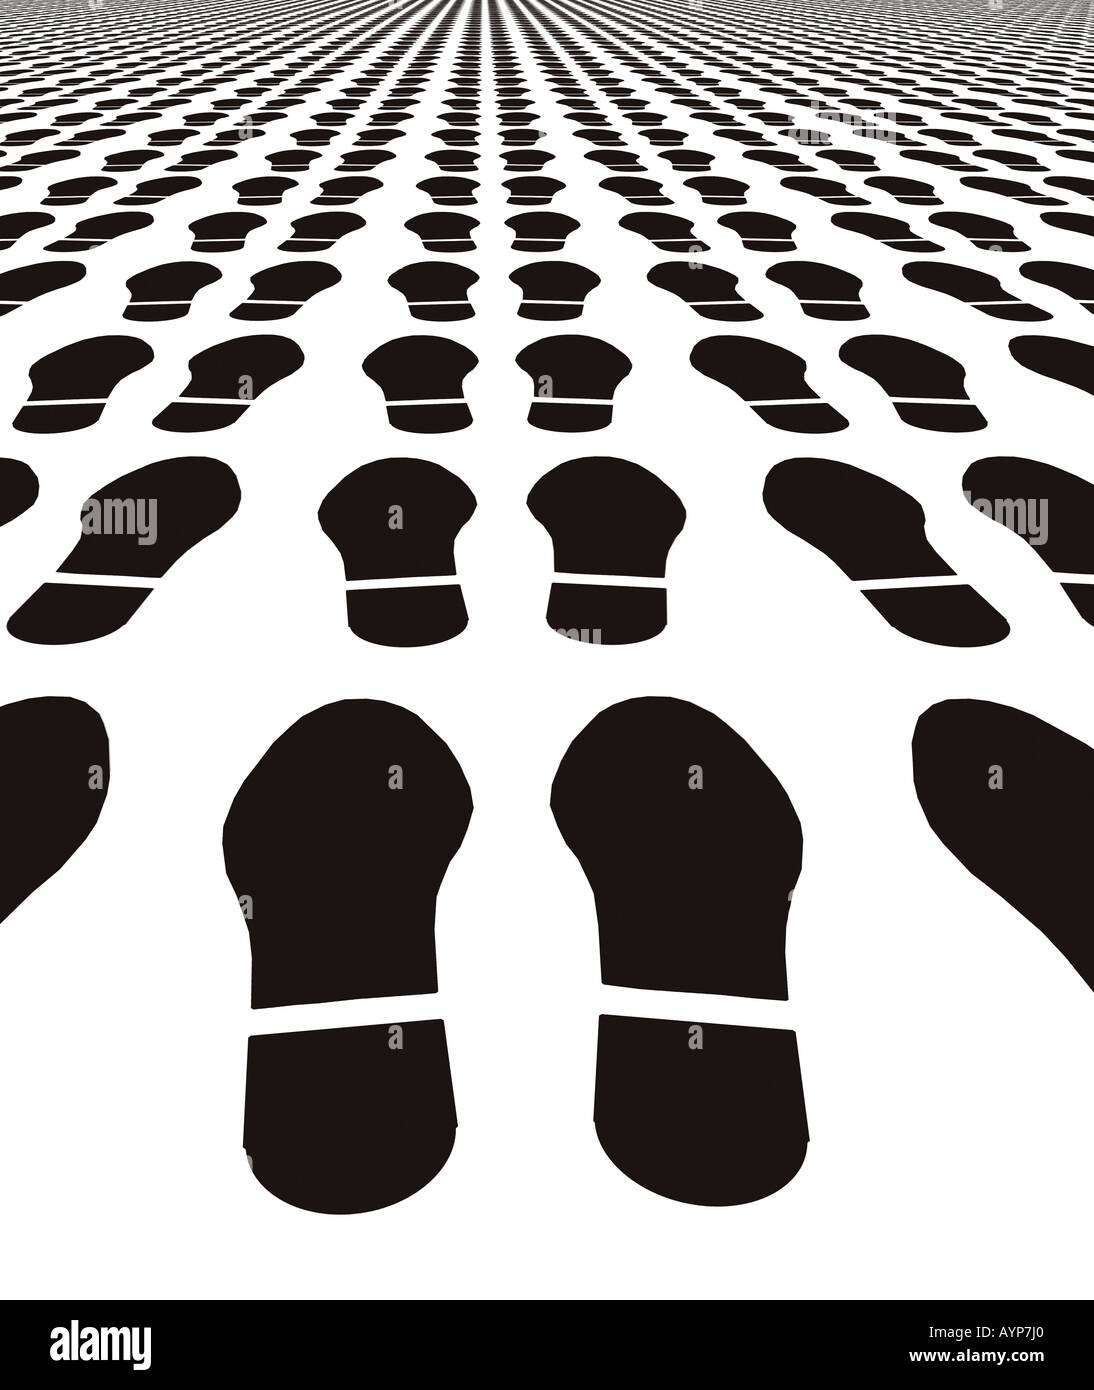 Shoe Prints Silhouette Stockfotos & Shoe Prints Silhouette Bilder ...